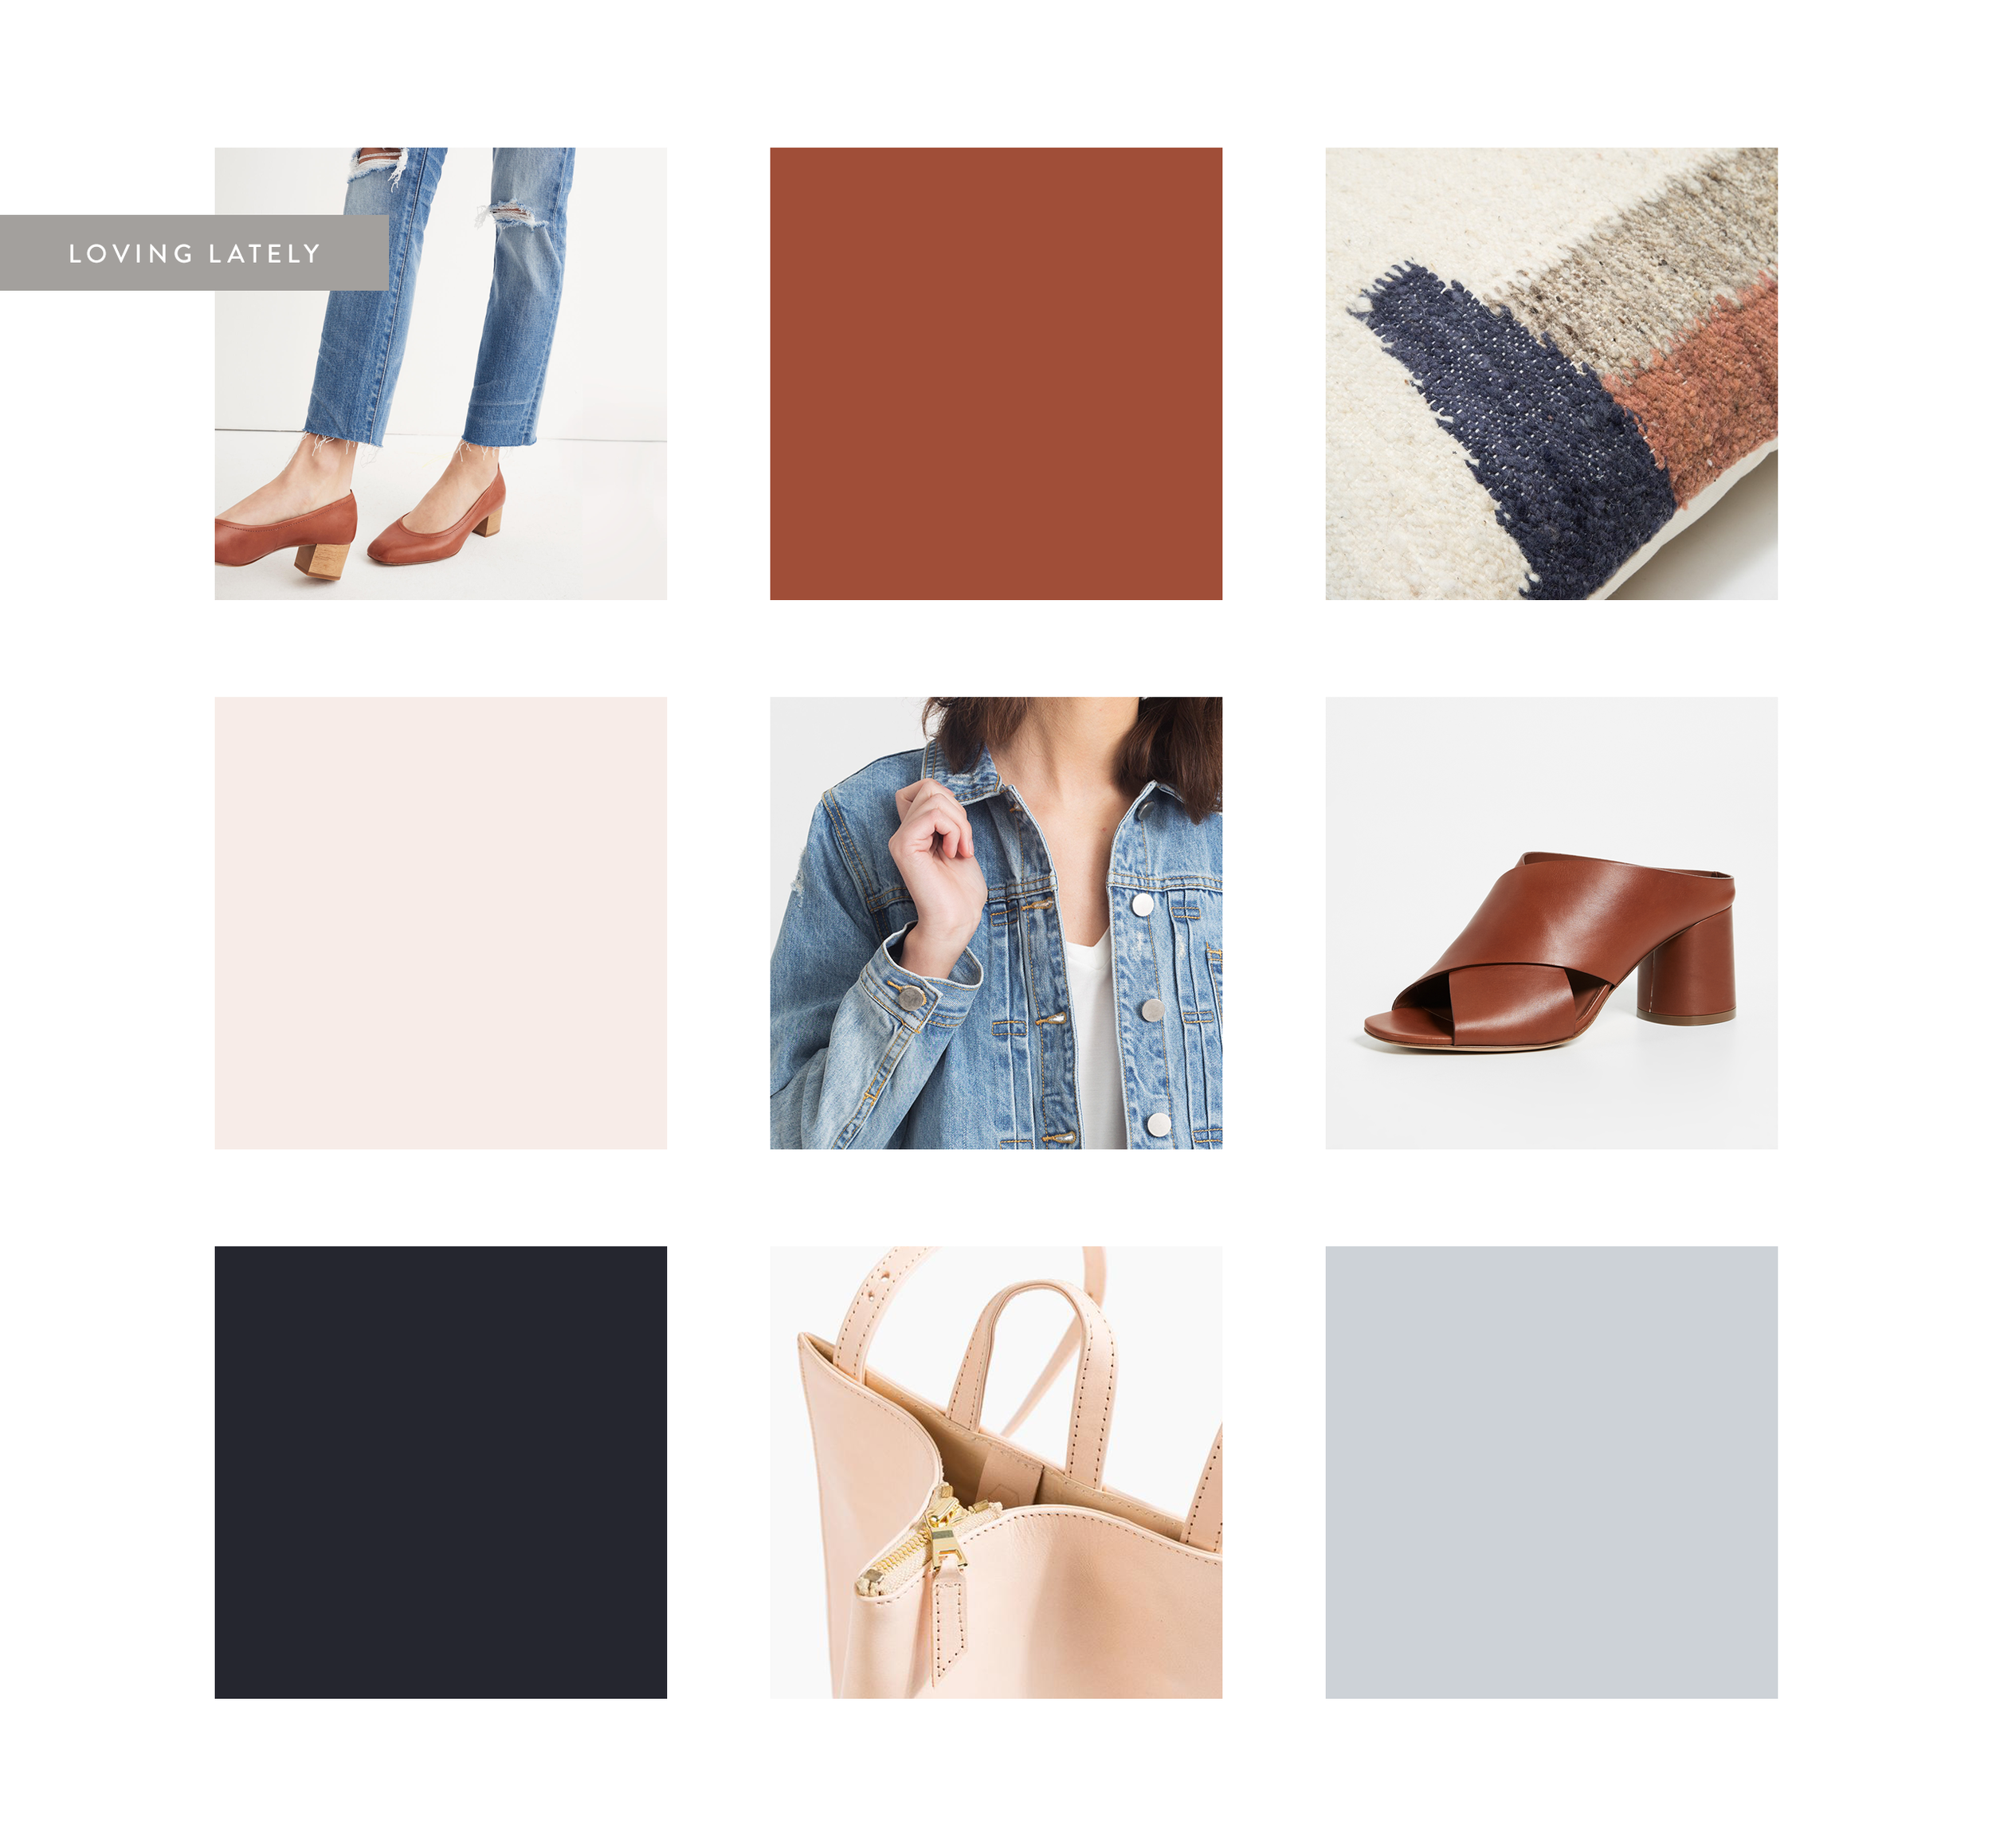 1.  the high-rise slim boy jean /madewell 2.  minna f  ormas pillow 20x20 /need supply co. 3.  vince theron mules /shopbop 4.  peyton denim jacket  / modern citizen 5.  the common knowledge bag  / poketo